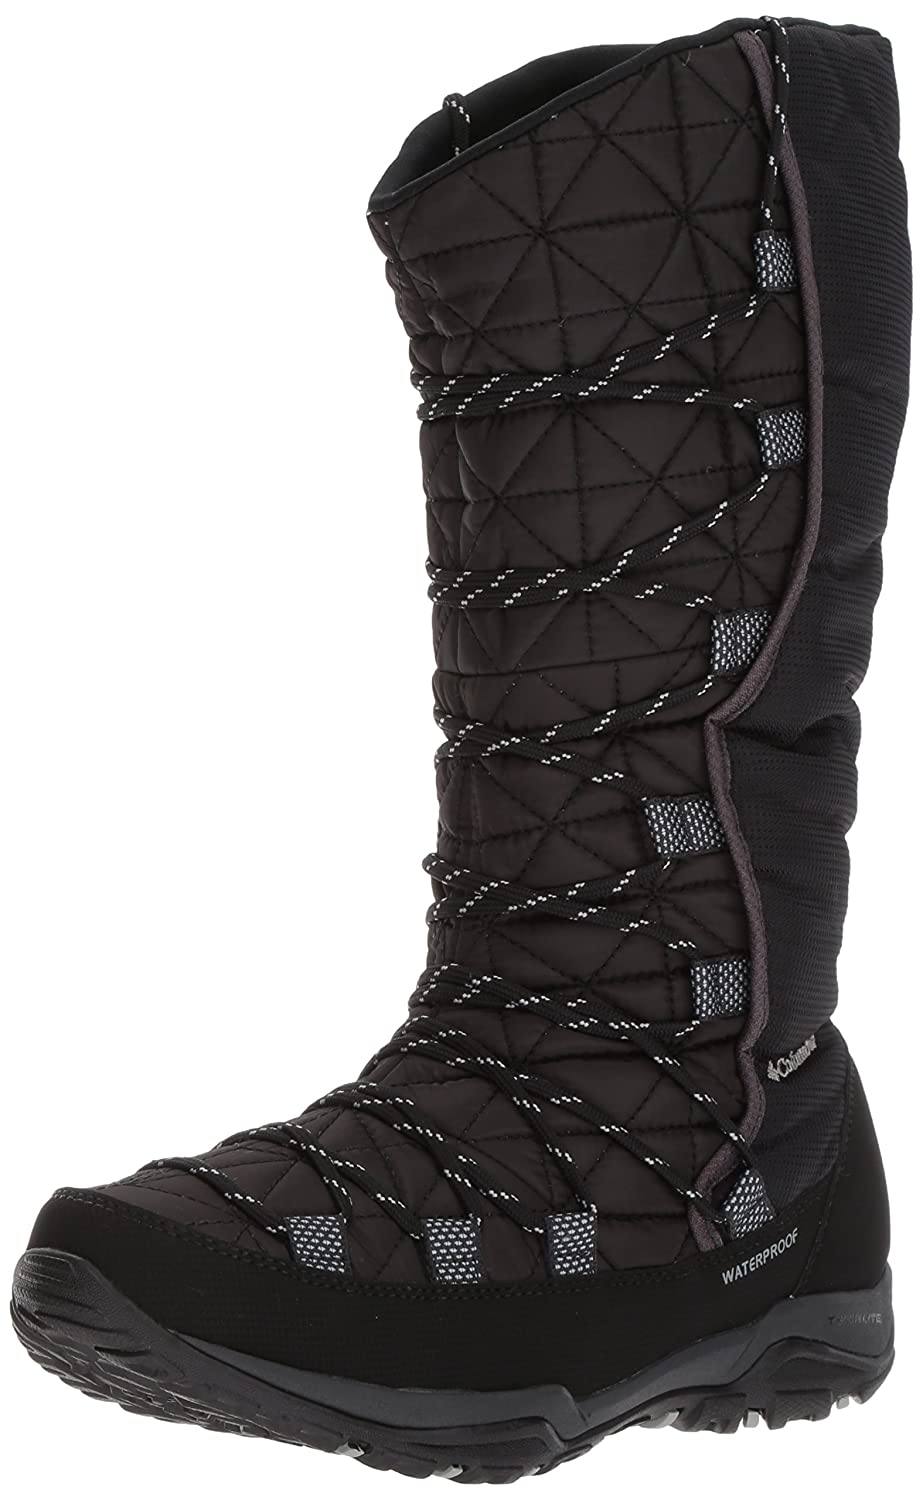 Columbia Women's Loveland Omni-Heat Snow Boot B01N1U6VJZ 9 B(M) US|Black, Earl Grey